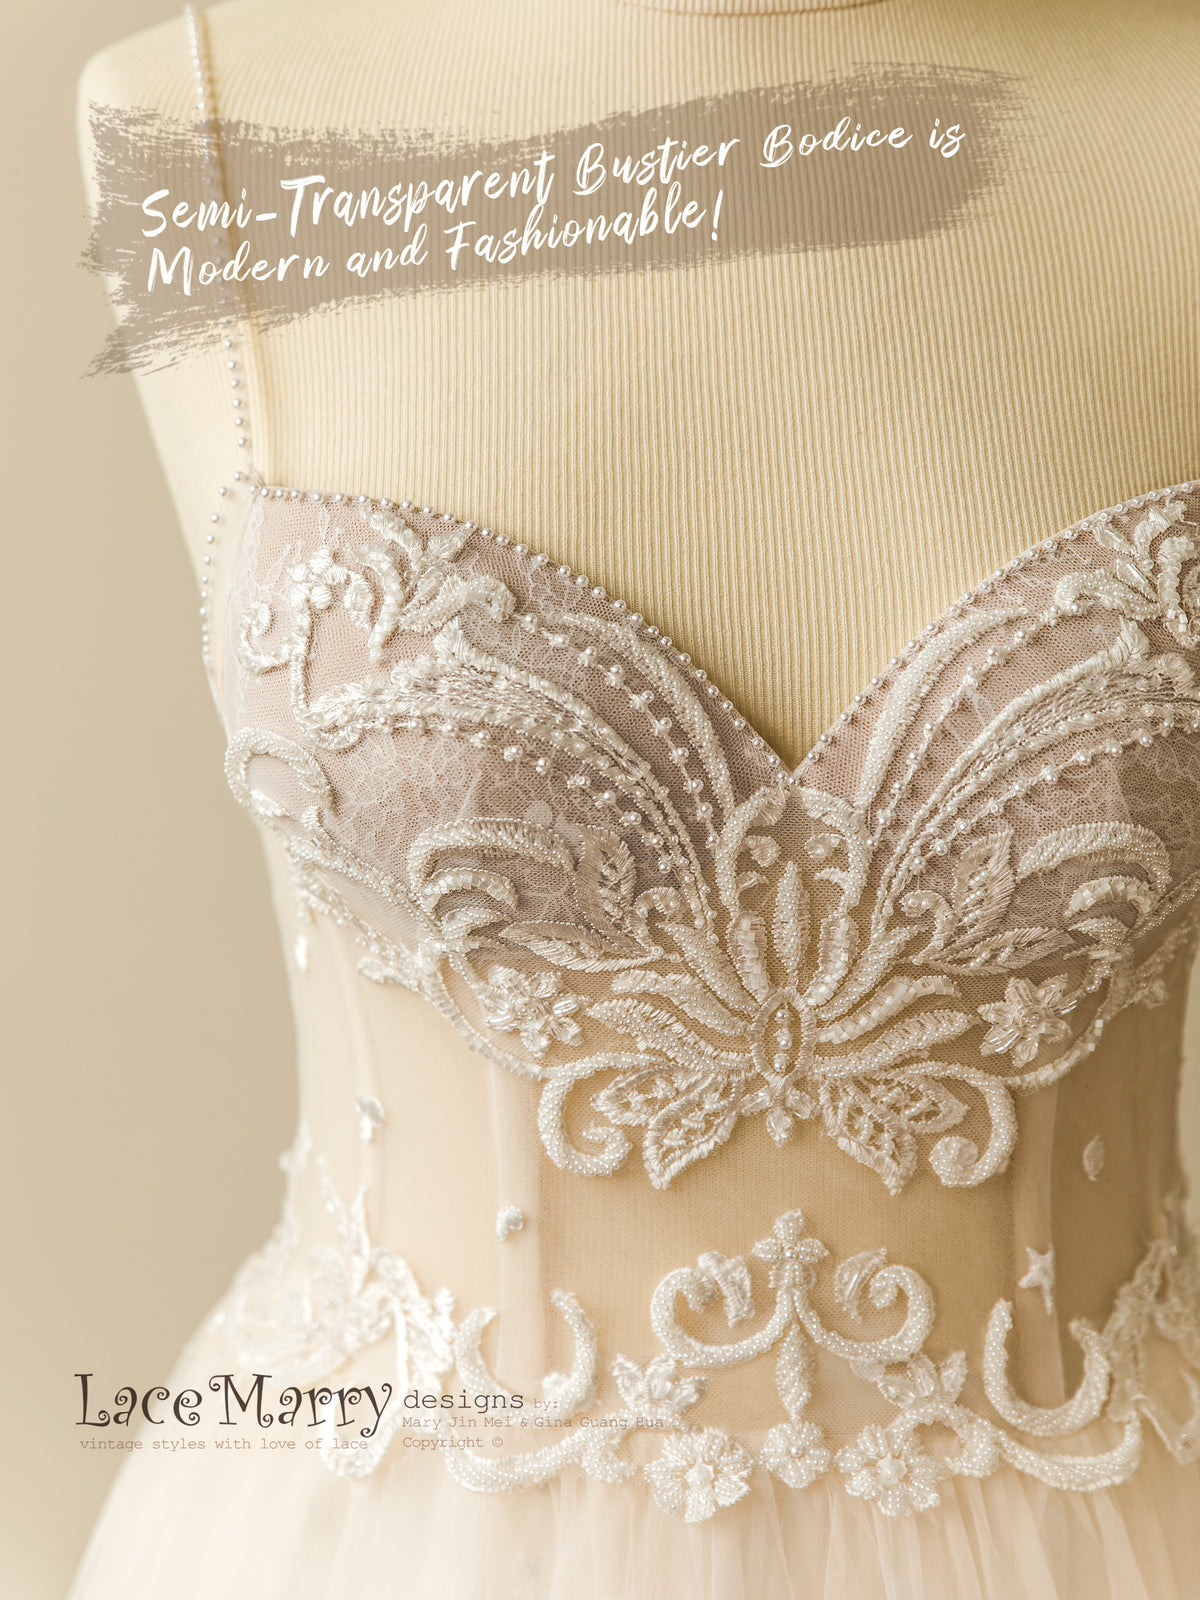 Wedding Dress with Delicate Beading on Bustier Corset Top